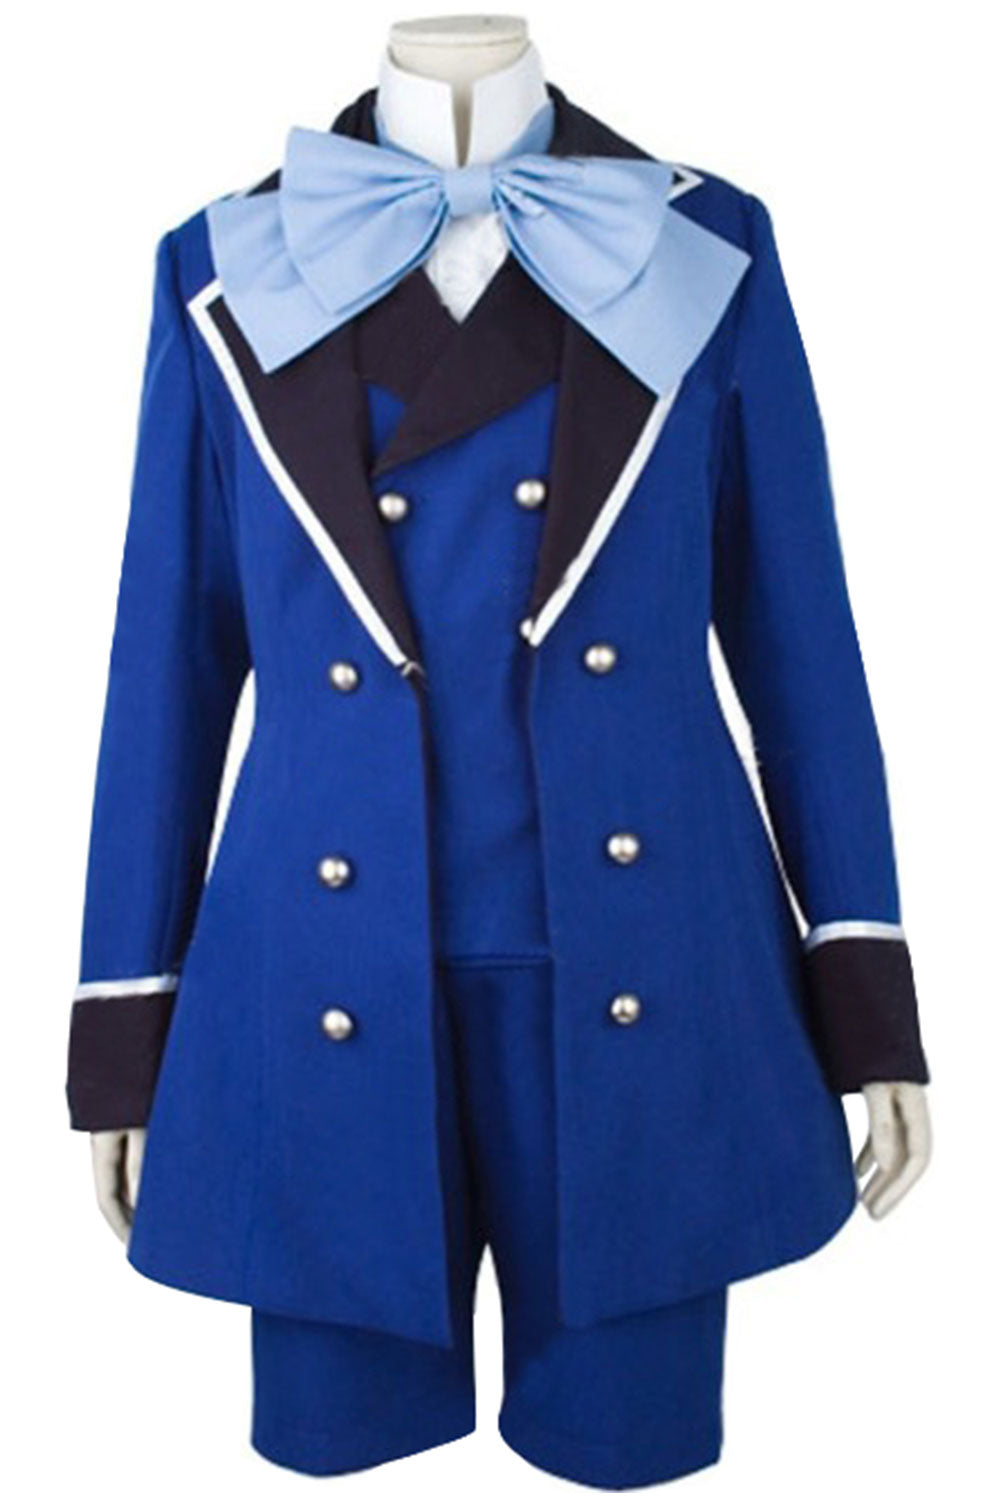 Black Butler II 2 Ciel Phantomhive Cosplay Costume version C